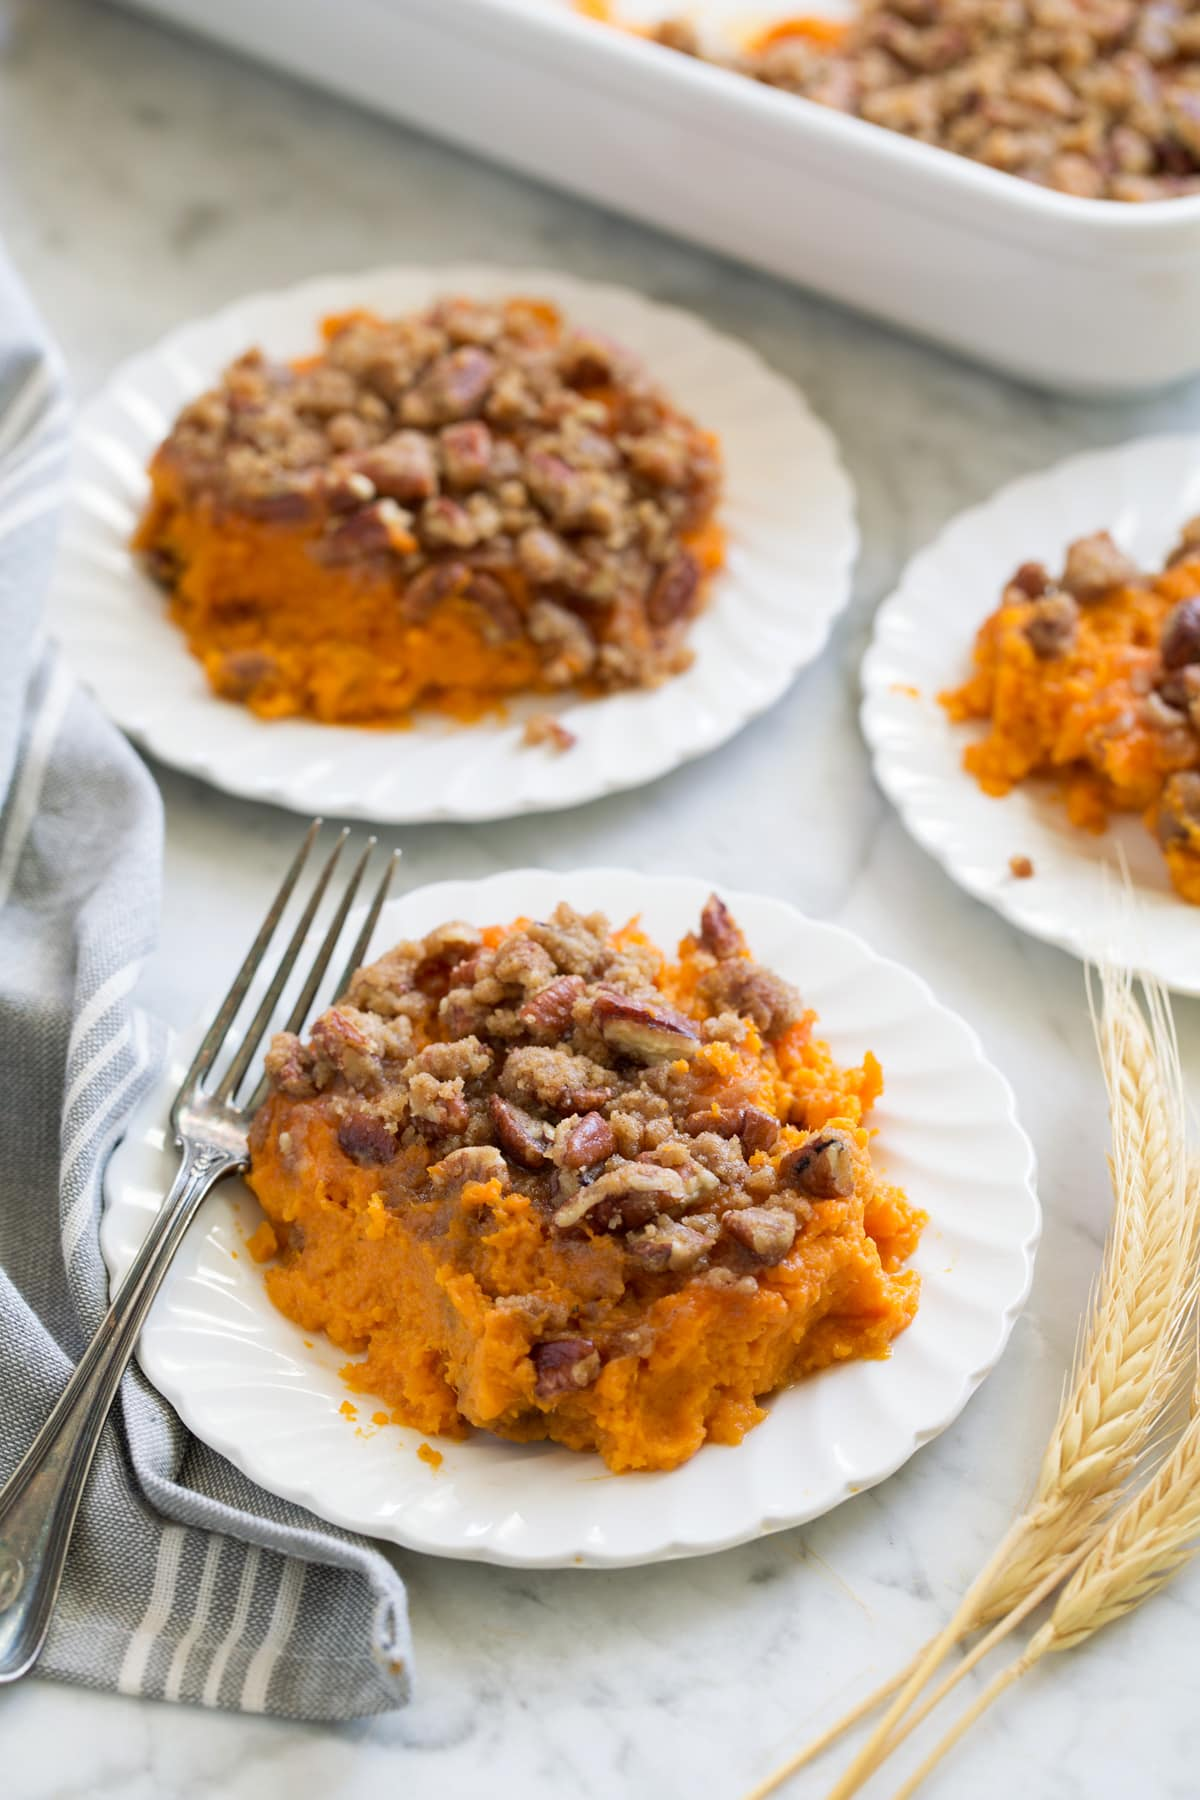 Sweet Potato Casserole shown in three individual servings and small white scalloped plates set over a marble surface.